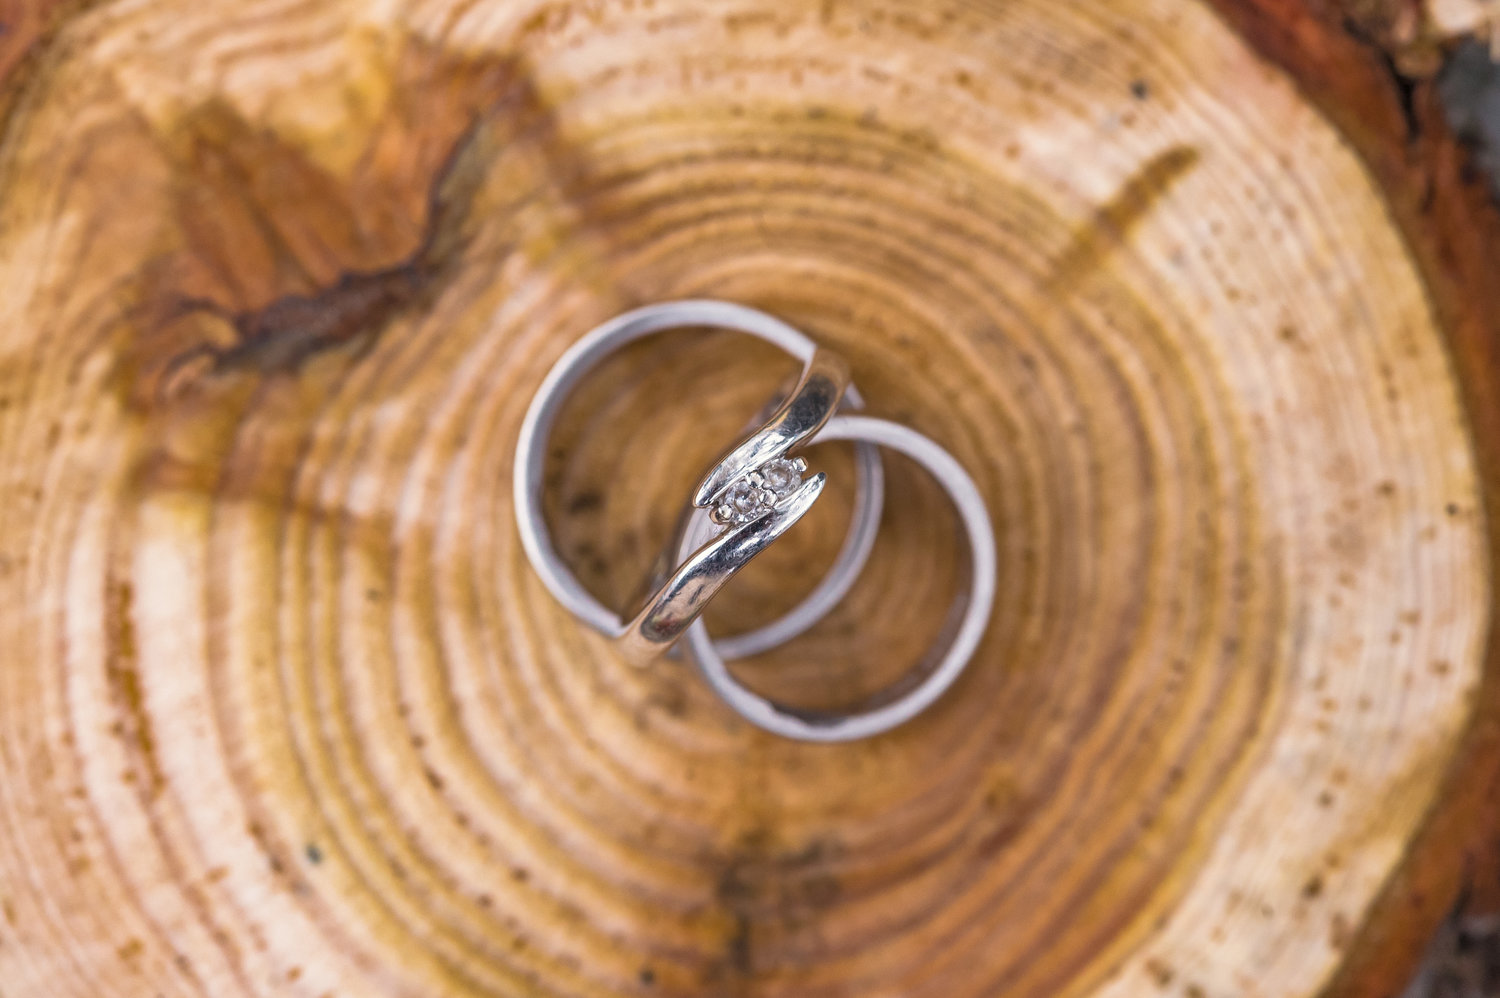 Rings engagement wedding photography Caterina Bugno_1.jpg